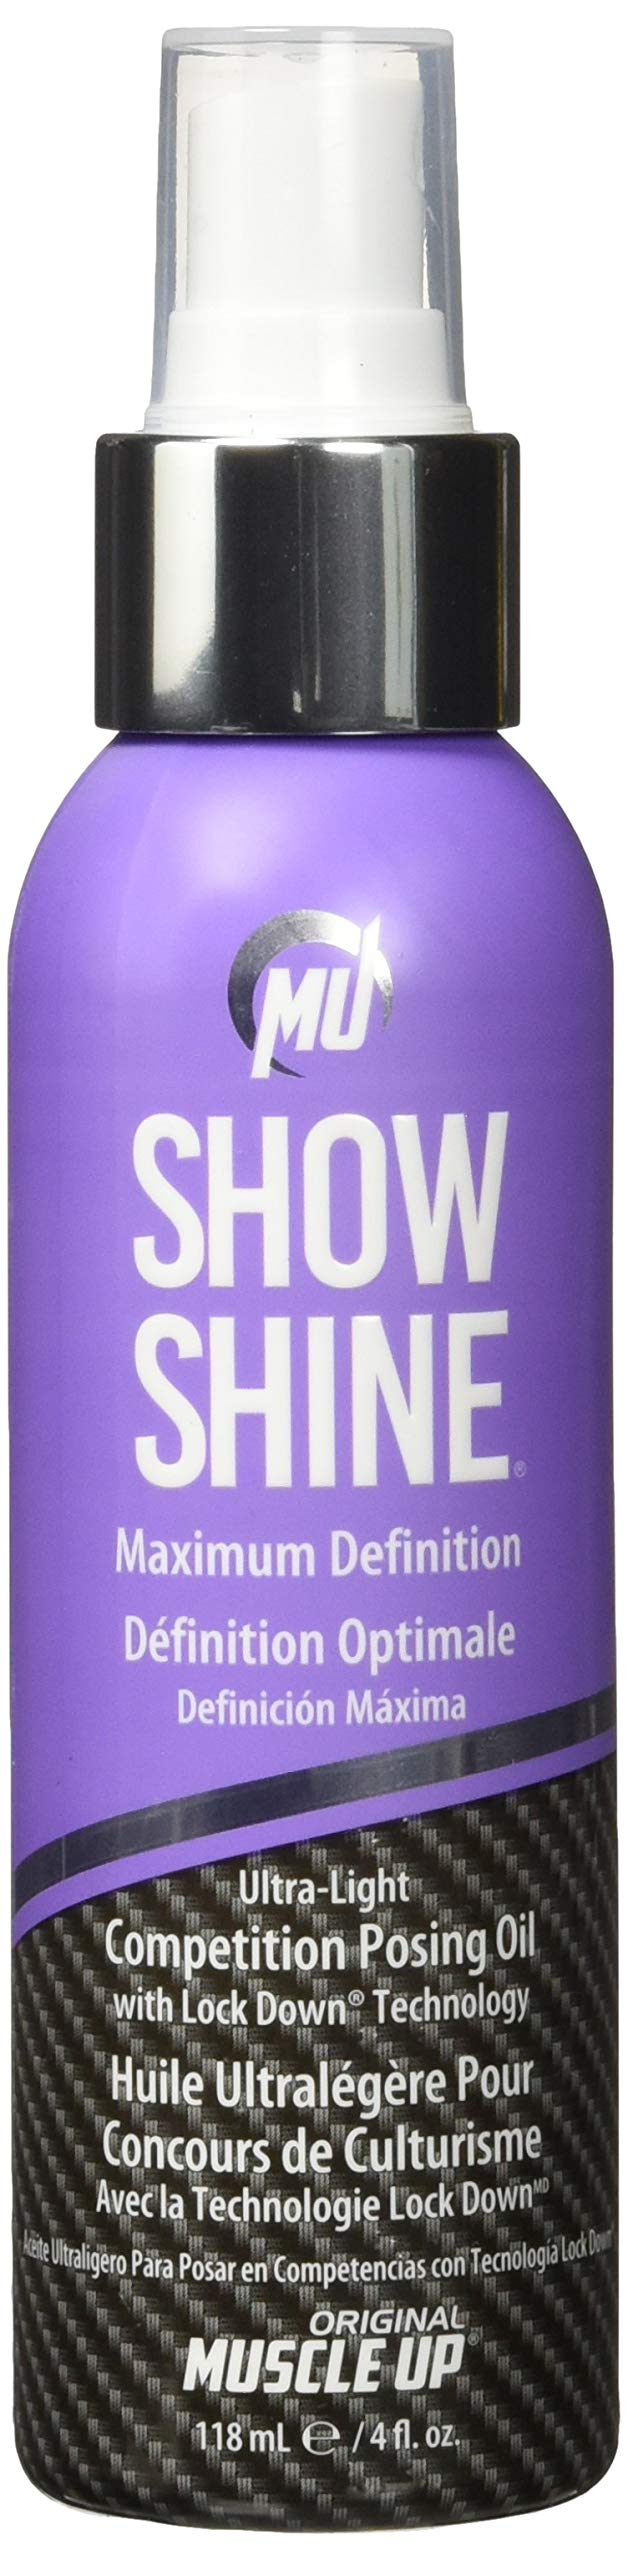 Pro Tan Muscle Up Show Shine Supplements, 4 oz